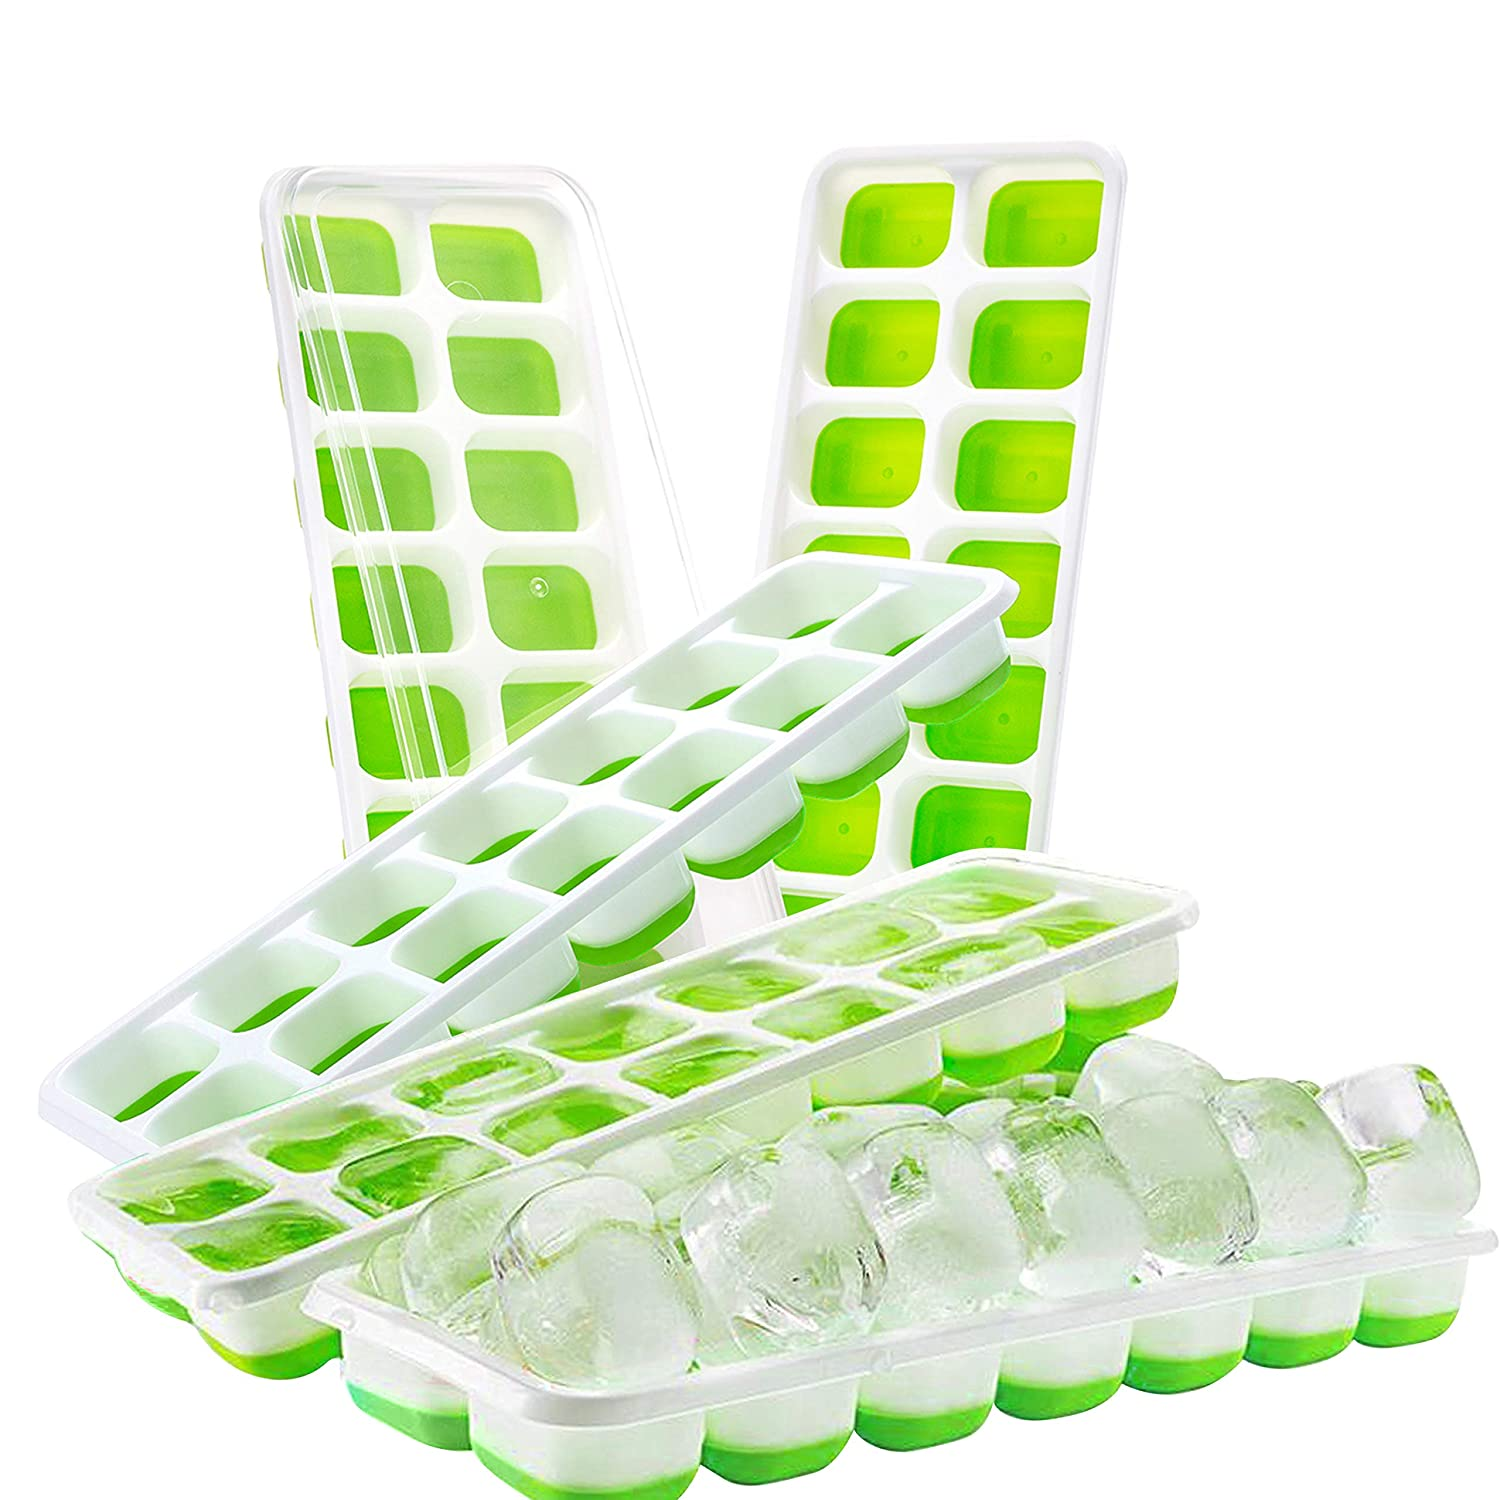 with Clear Removable Lids for Easy Stackable Water BPA Free Flexible Easy Release Ice Cube Moulds Green Cocktails Best for Freezer Baby Food Ice Cube Trays Whiskey 5 Pack